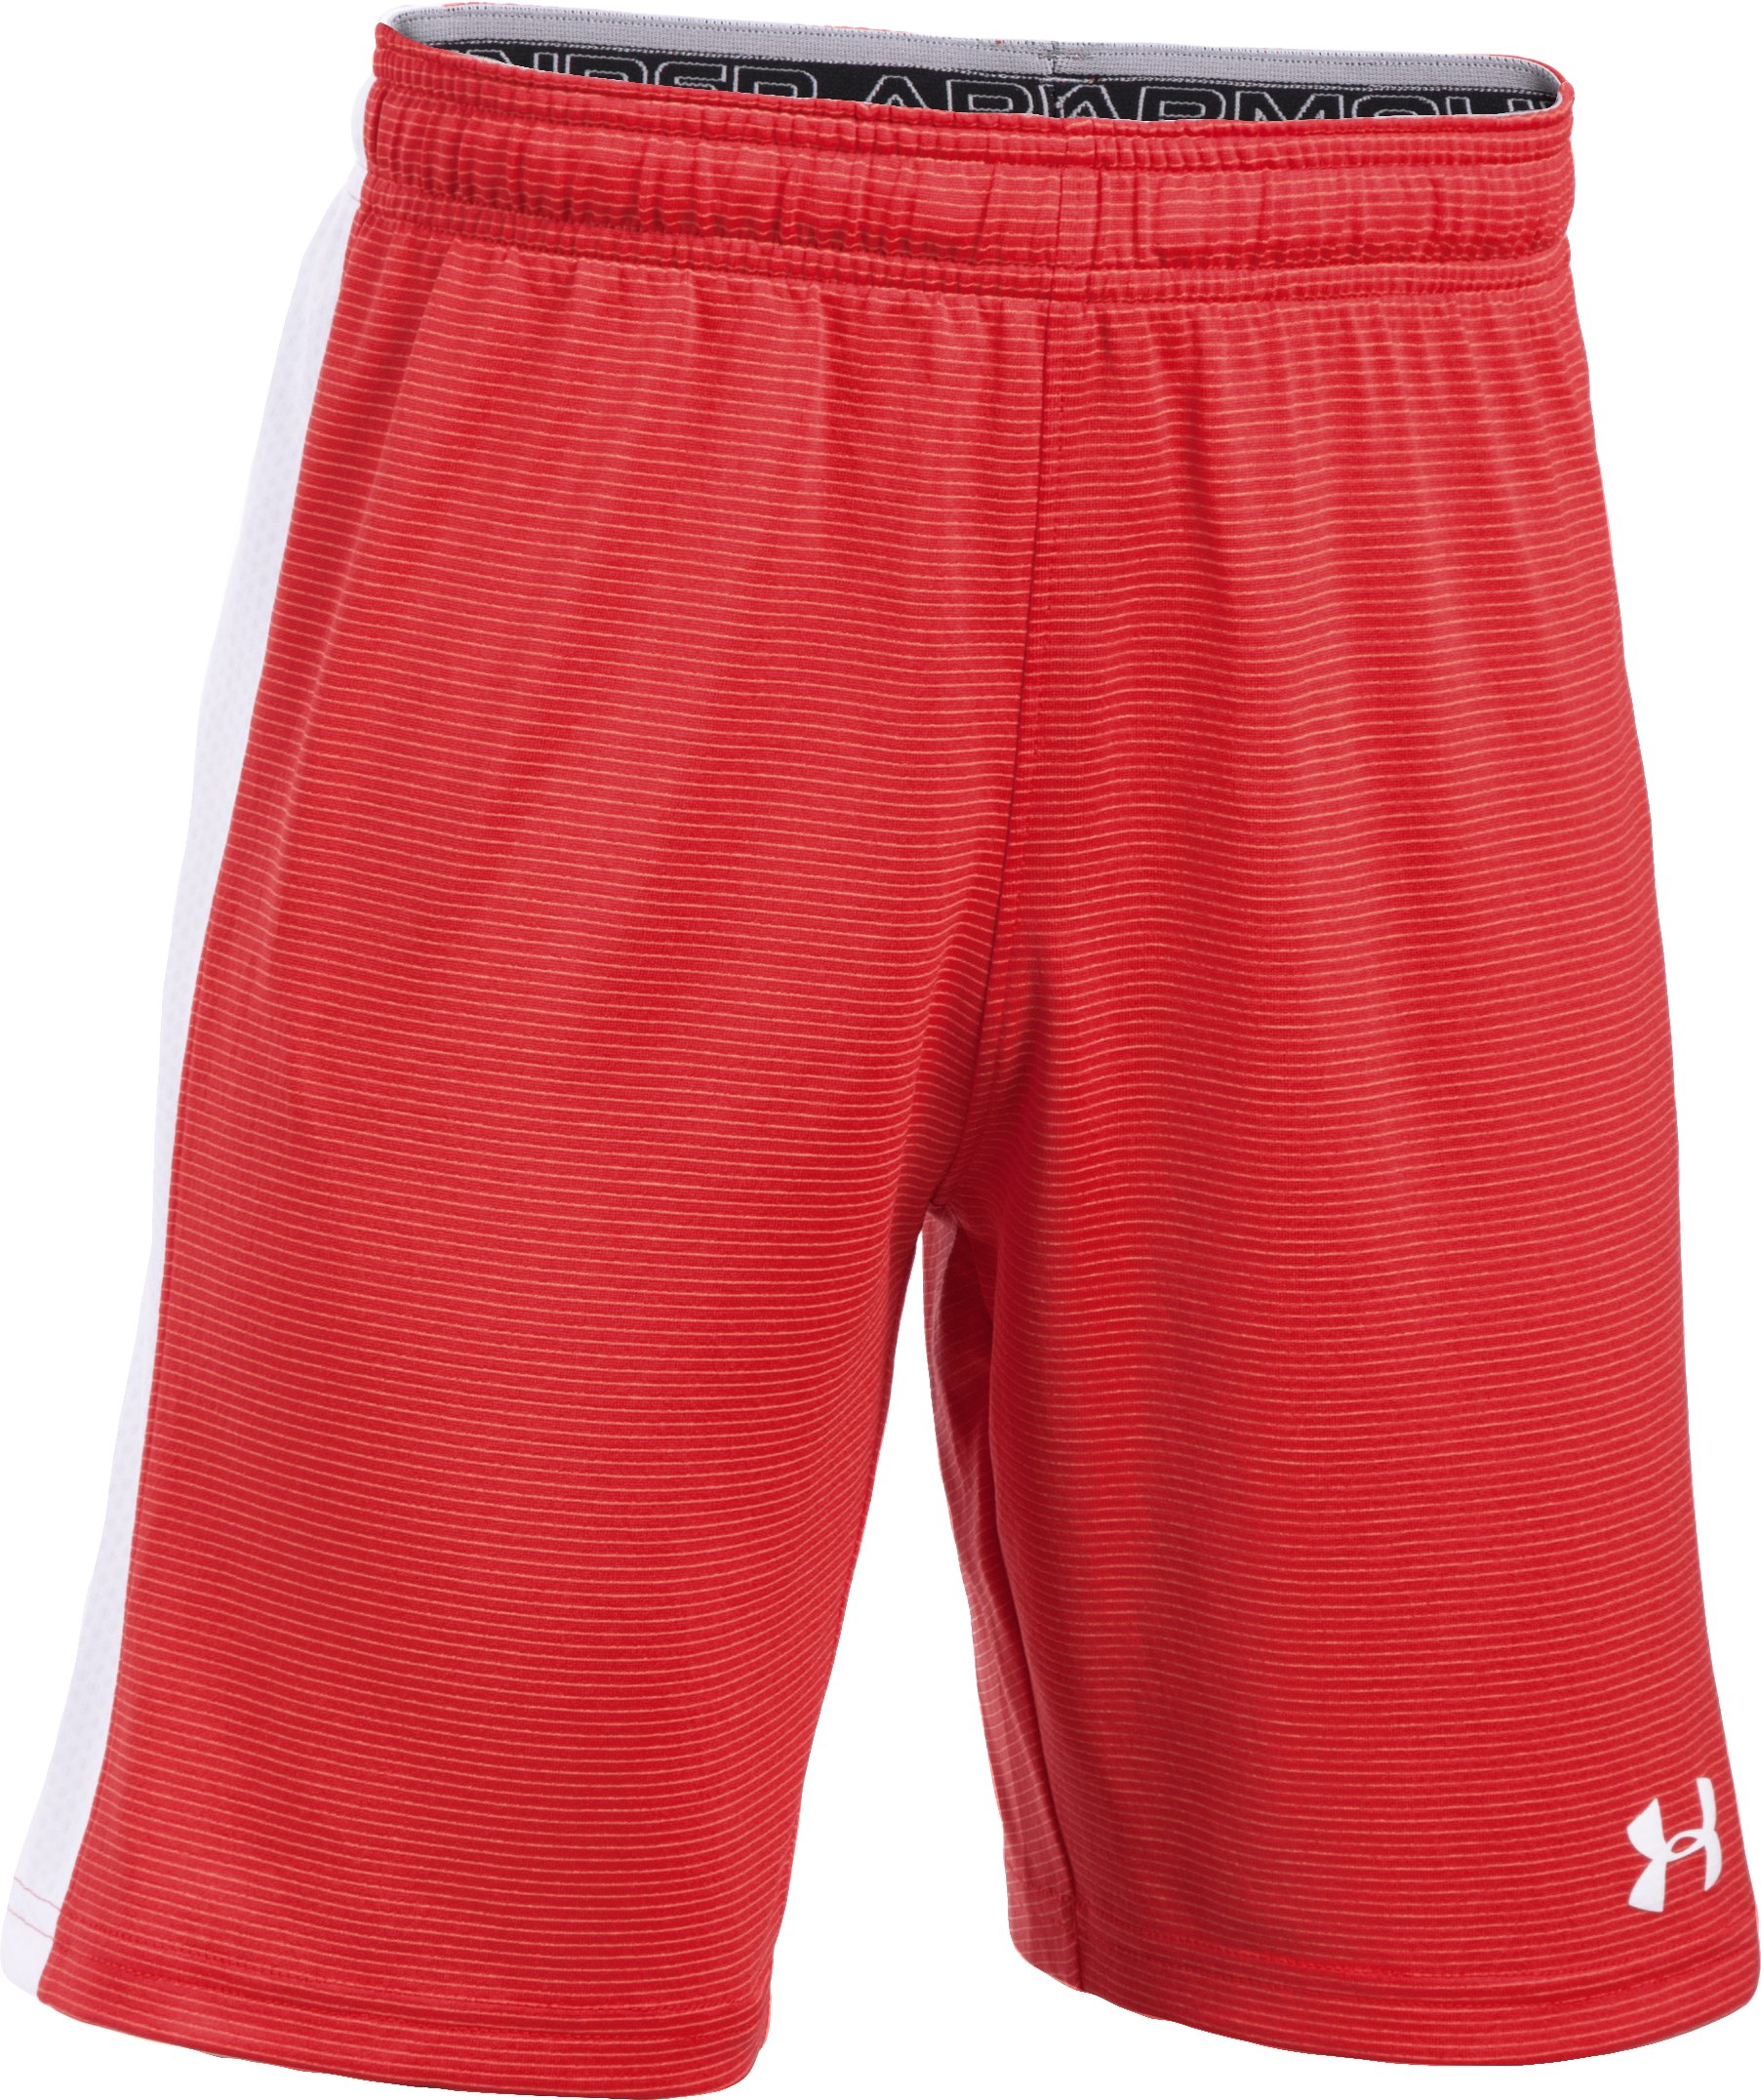 Boys' UA Threadborne Match Shorts, Red